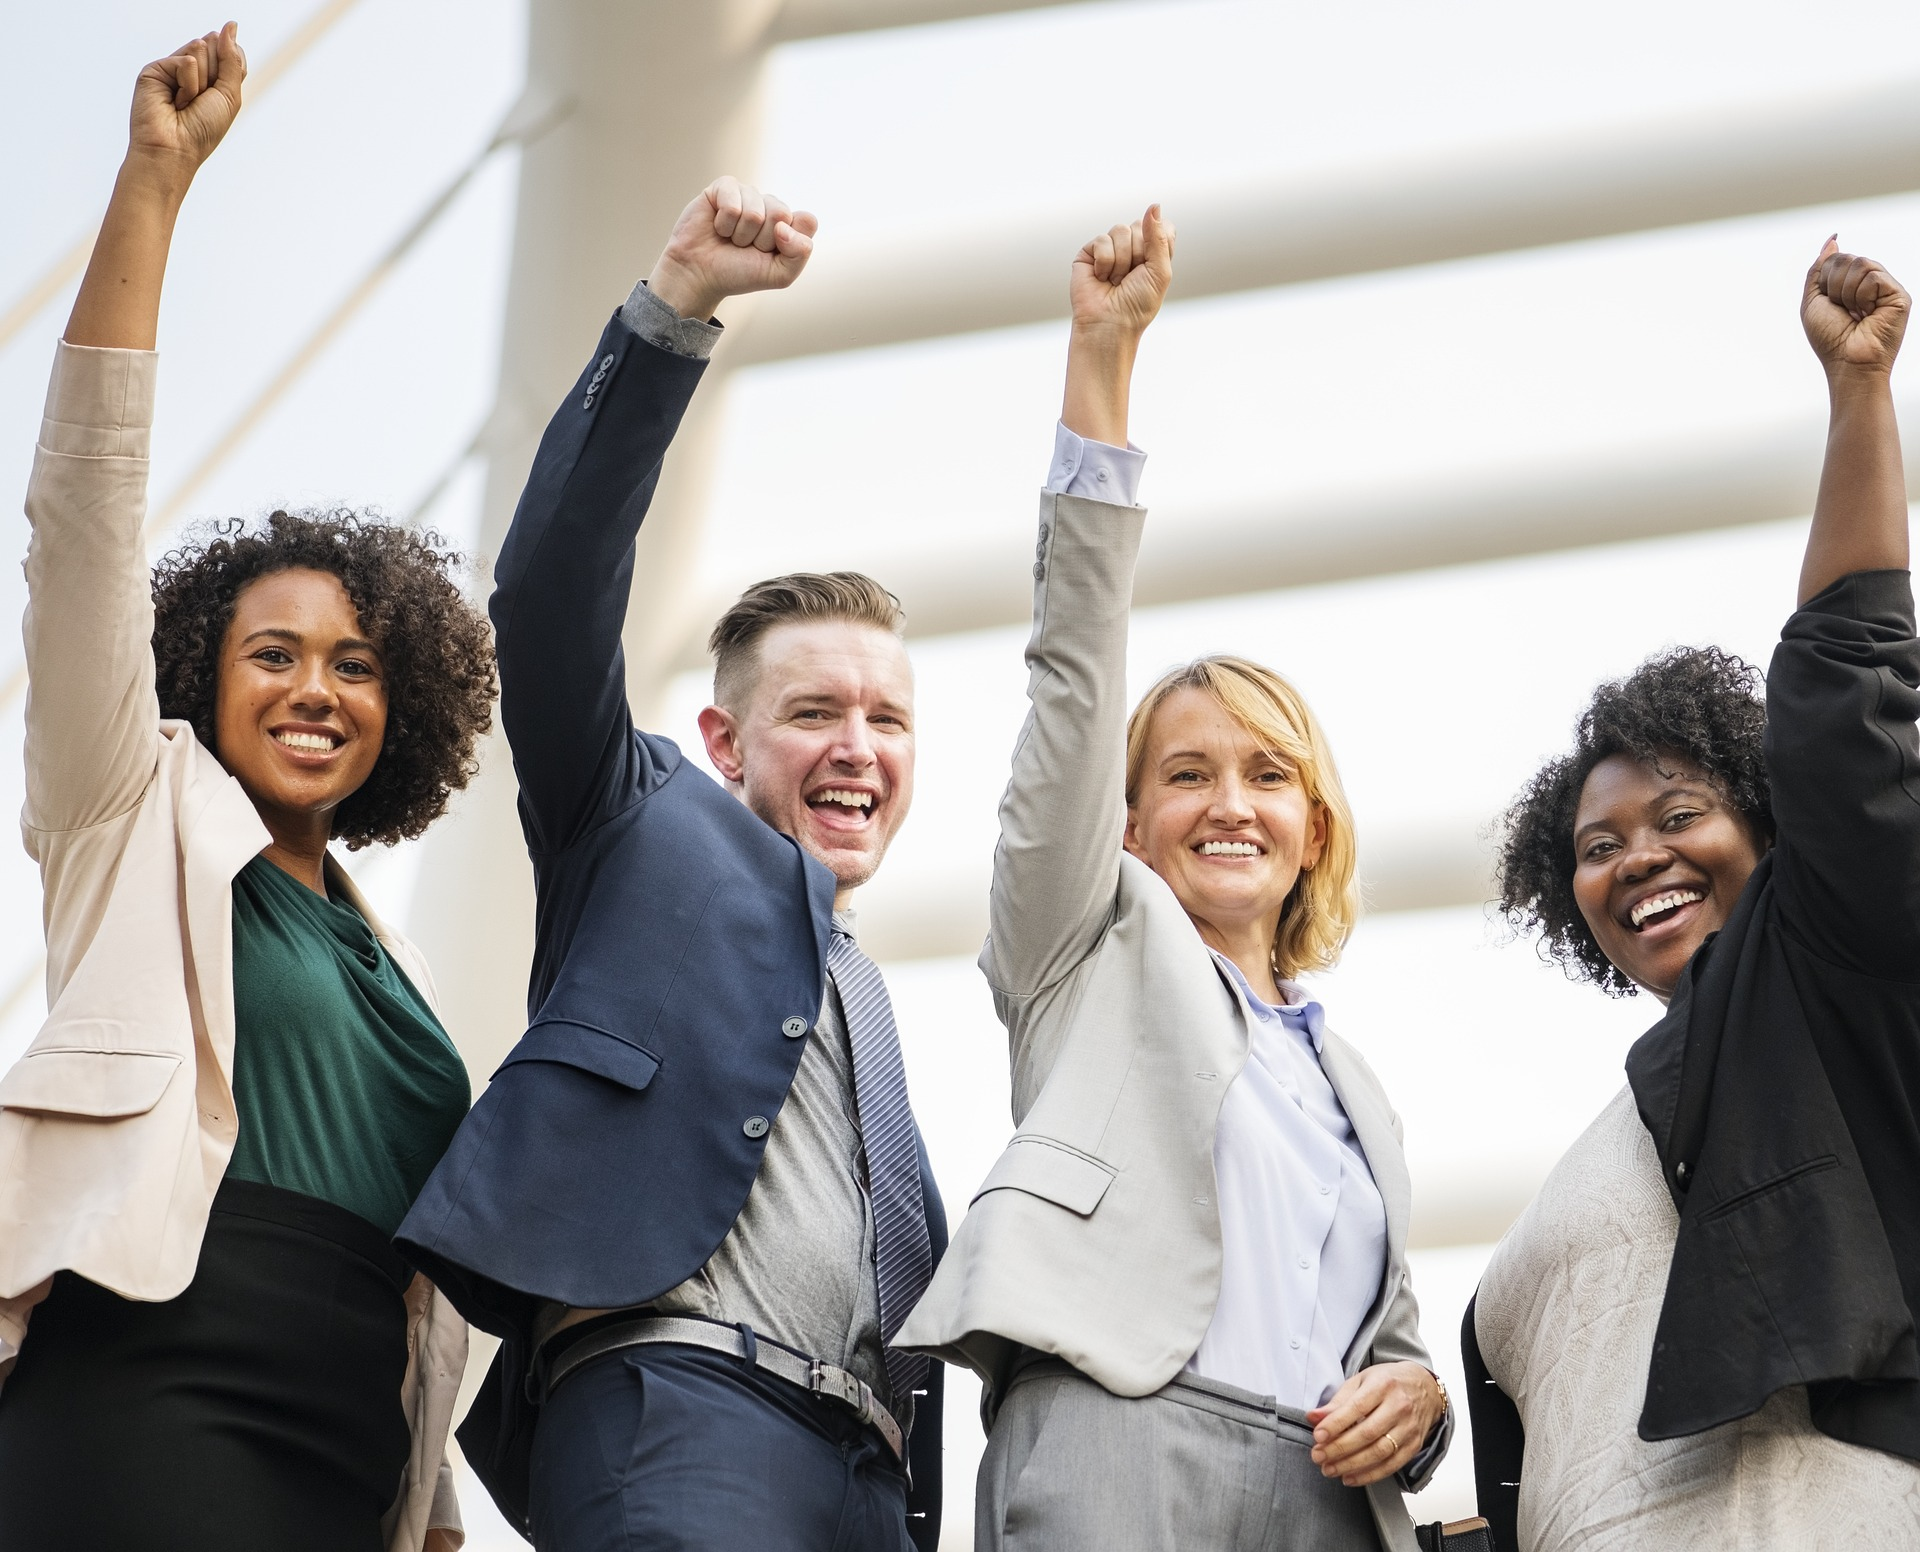 Holly Green: 5 Strategies for Winning in 2018